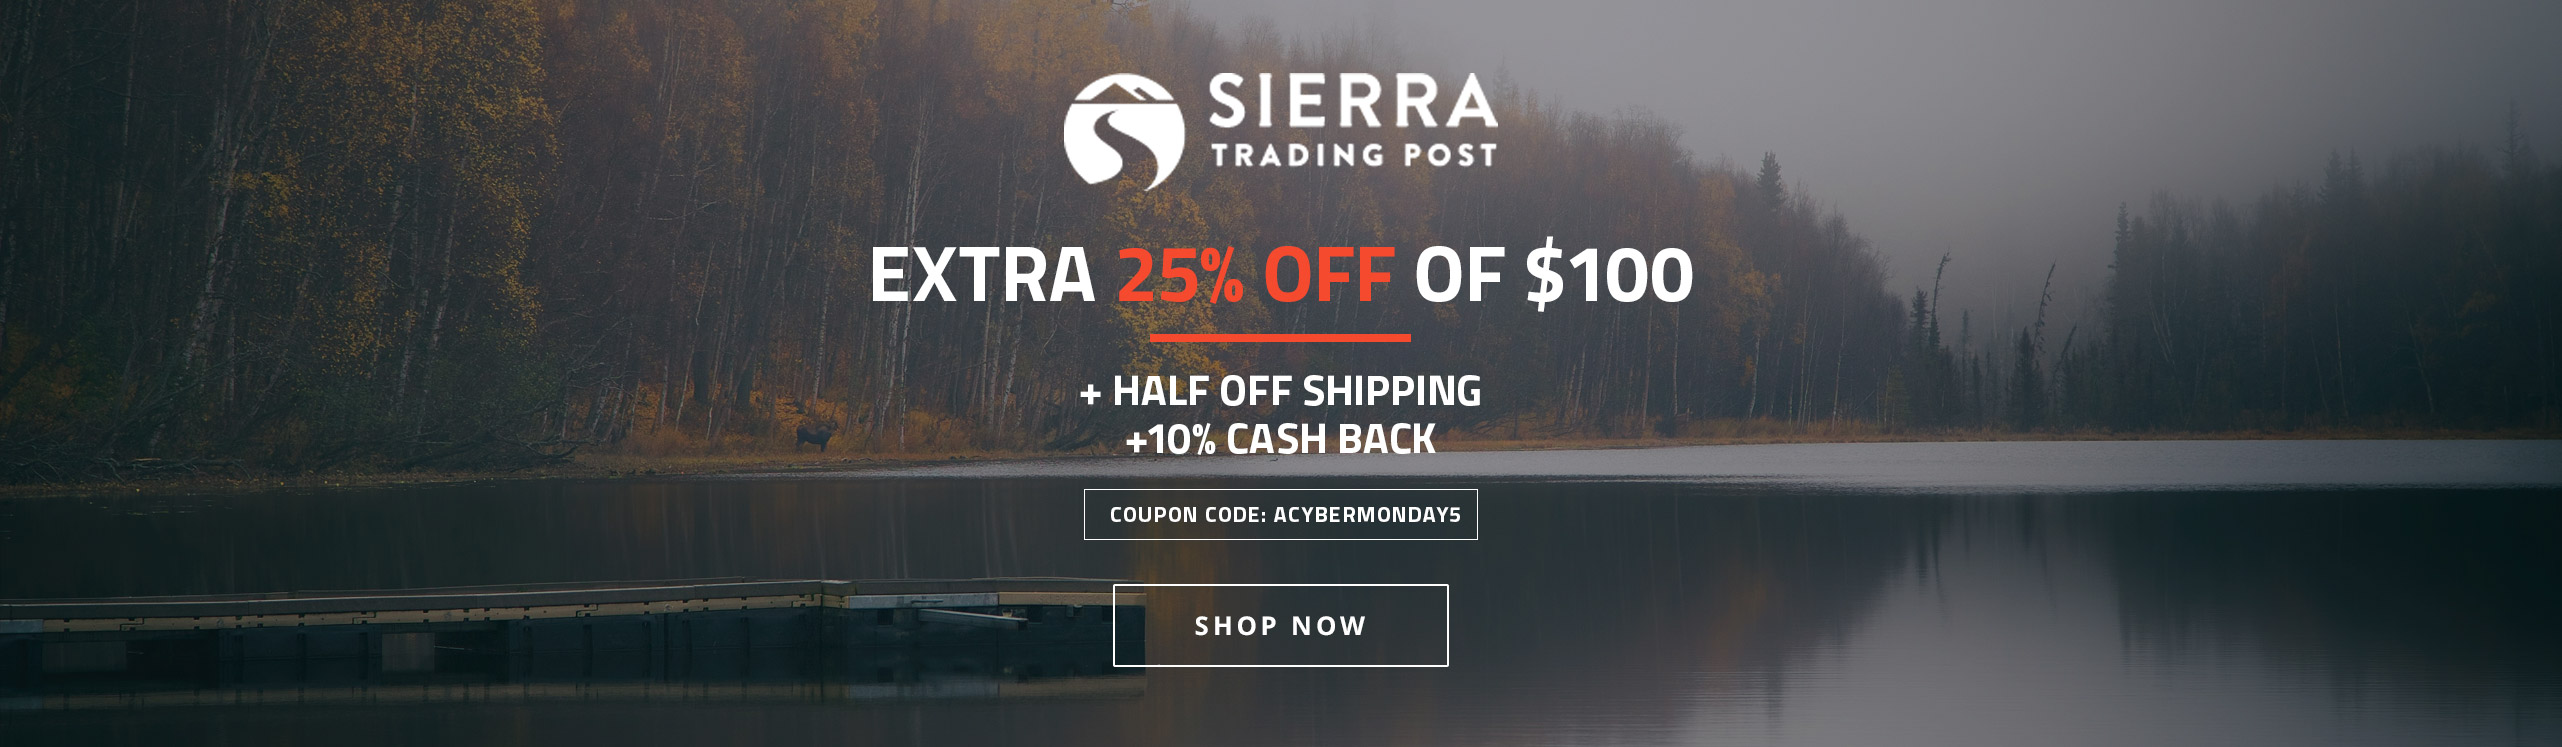 Sierra Trading Post Cyber Monday